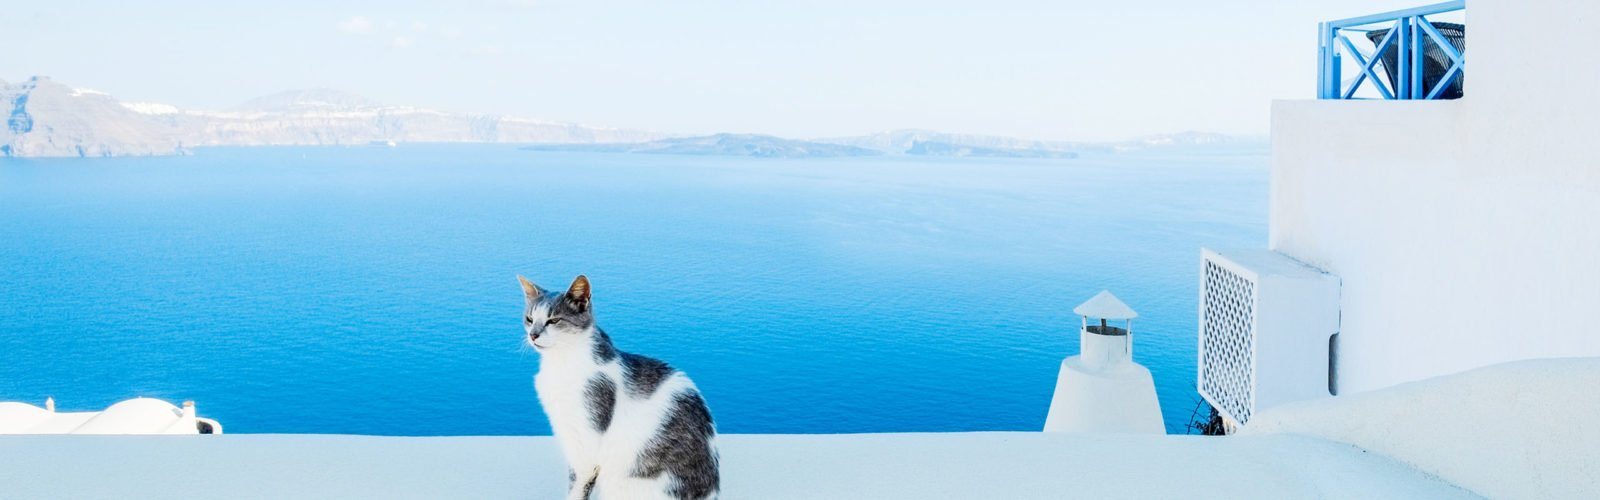 Cat against blue sky and sea in Santorini island, Oia, Greece